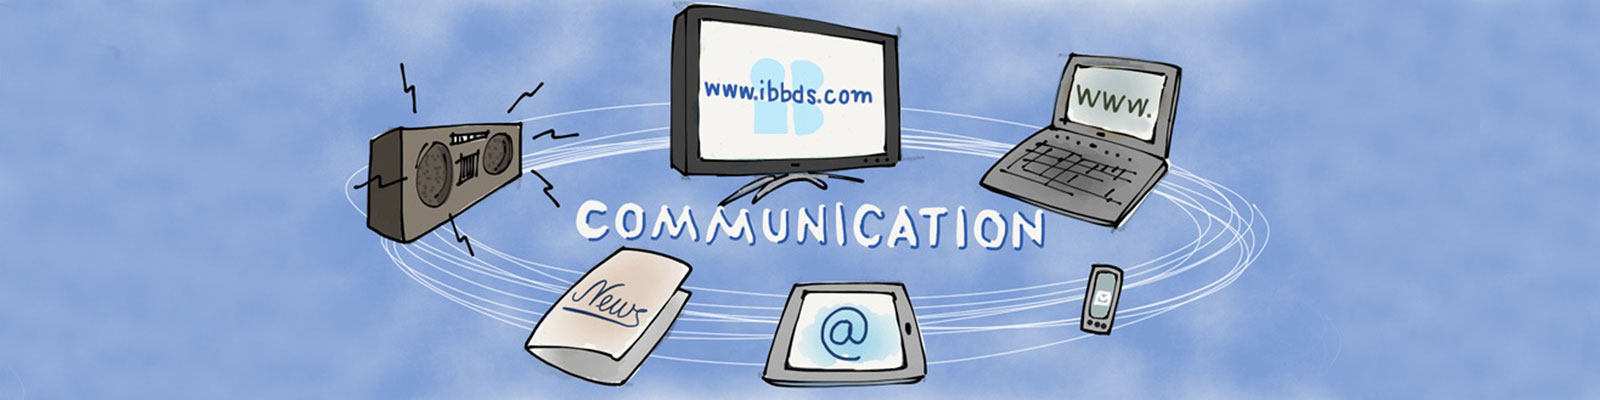 communication-solution-opt